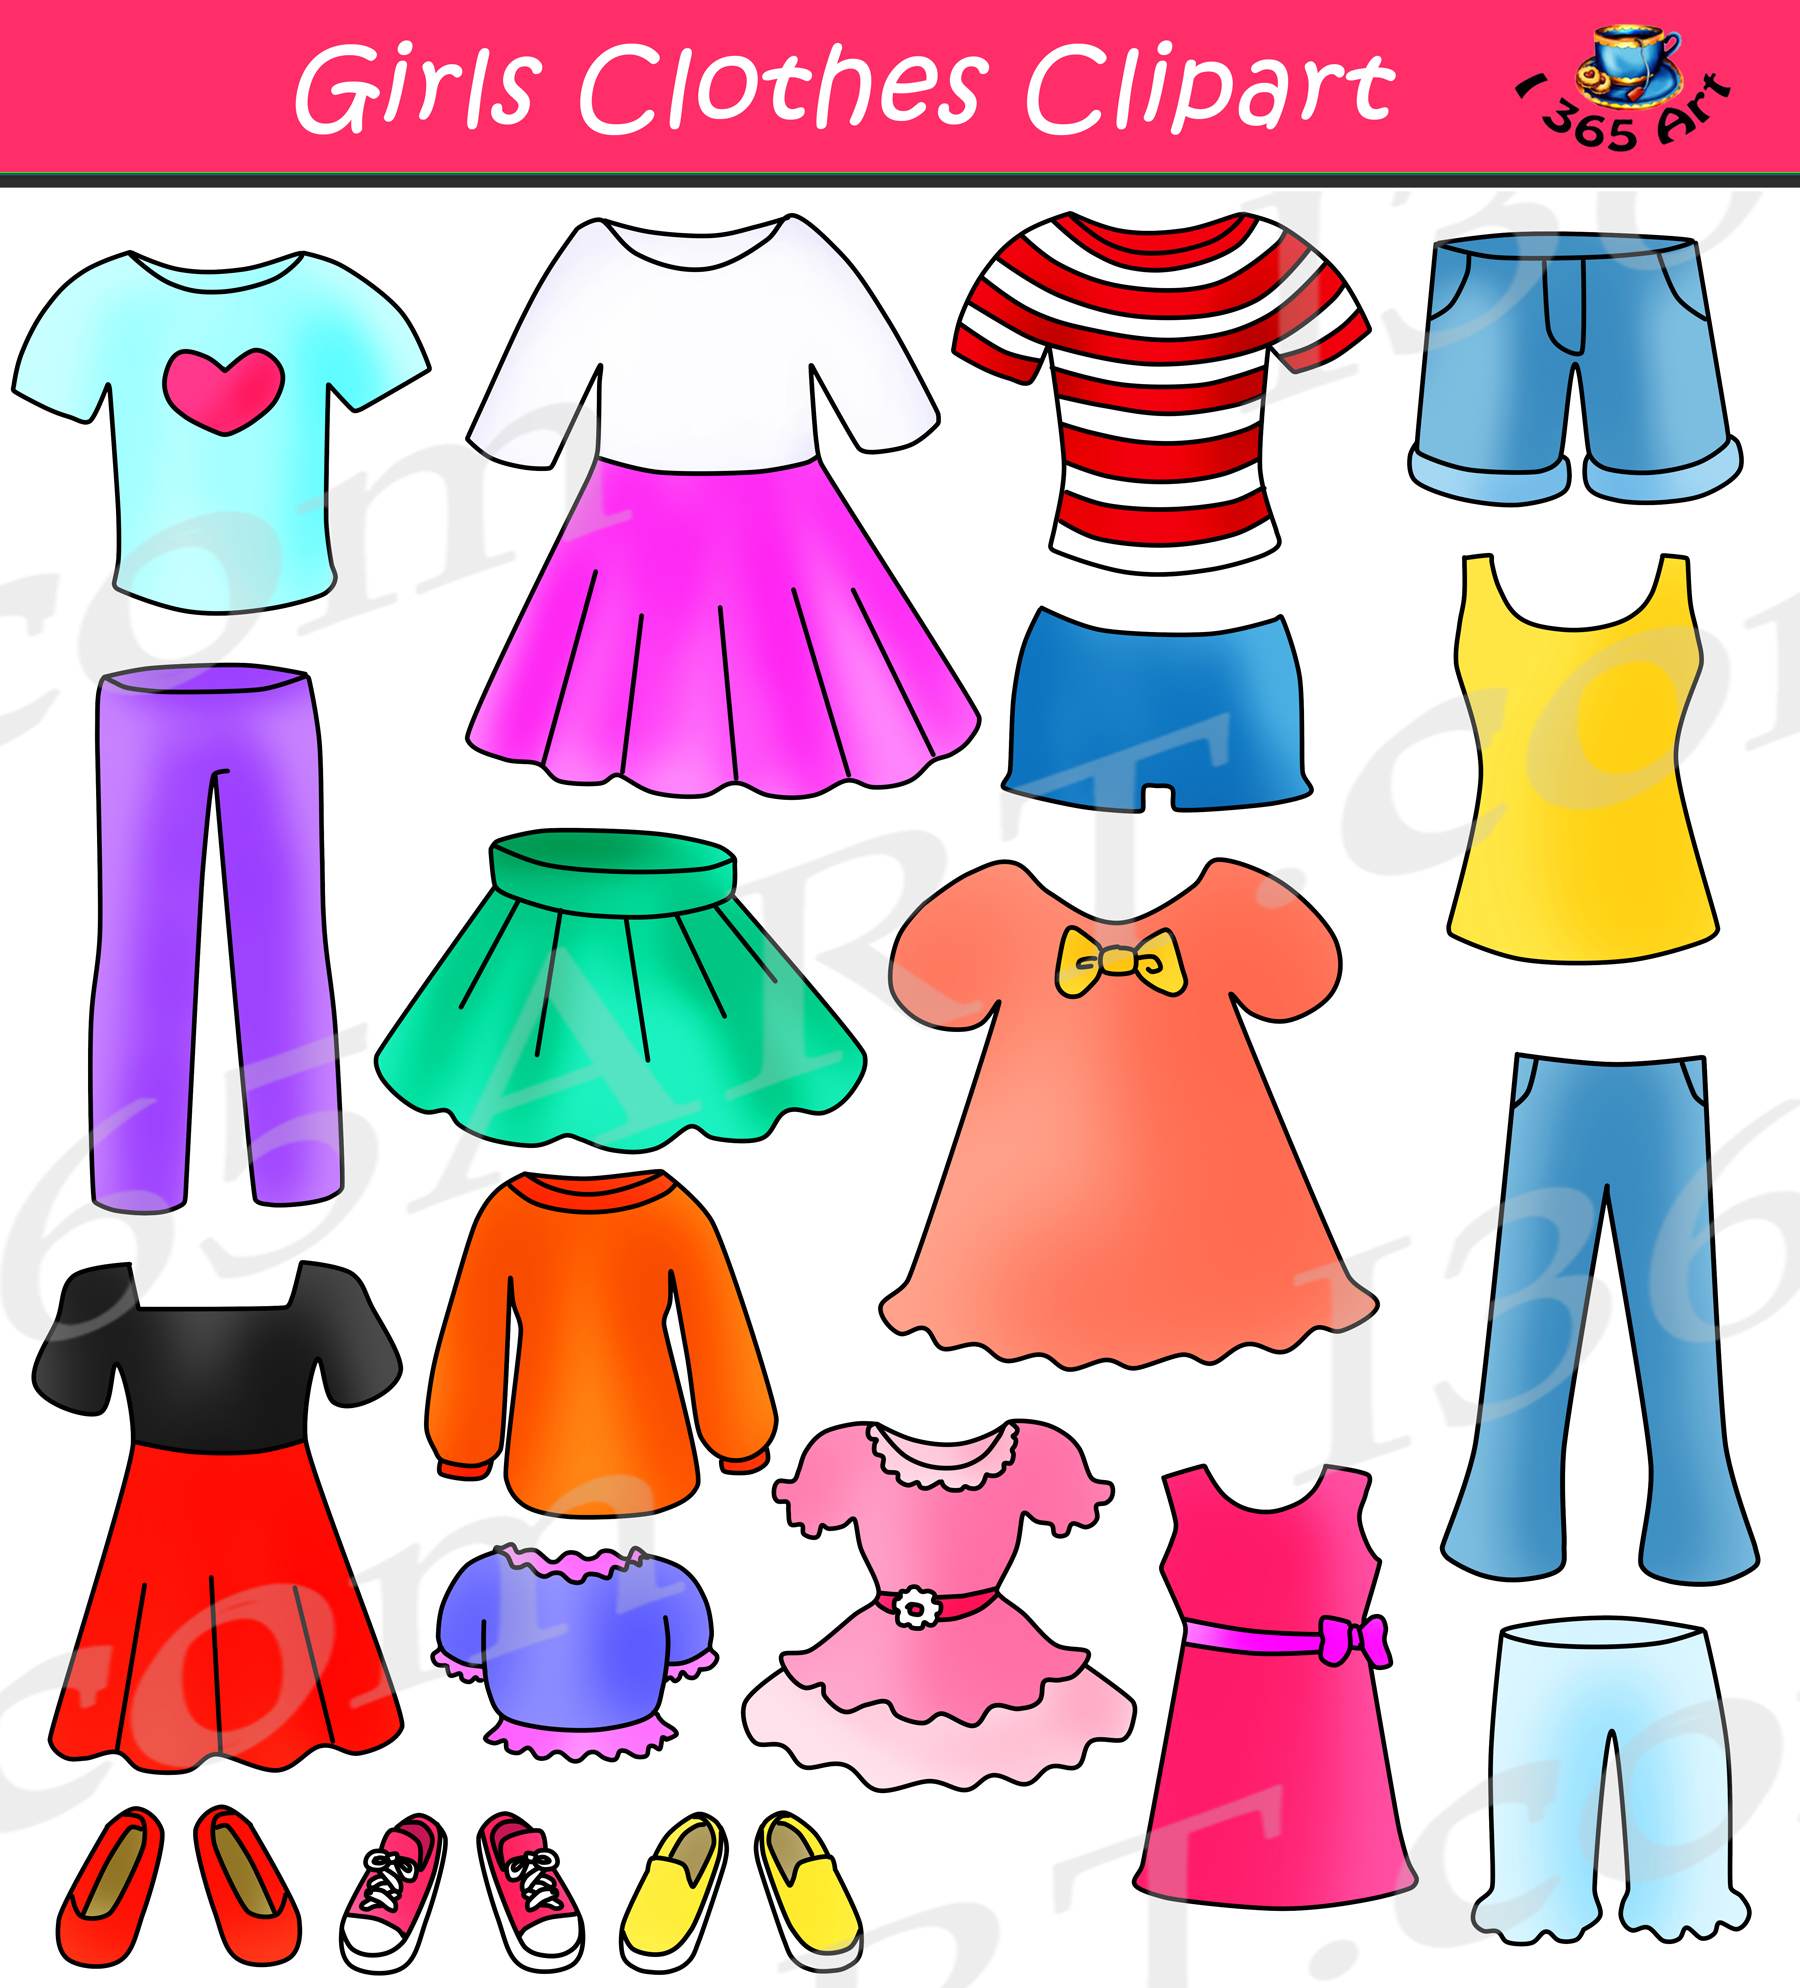 Girls dress clipart clip black and white library Girls Clothes Clipart Set Dress Up Clip Art clip black and white library